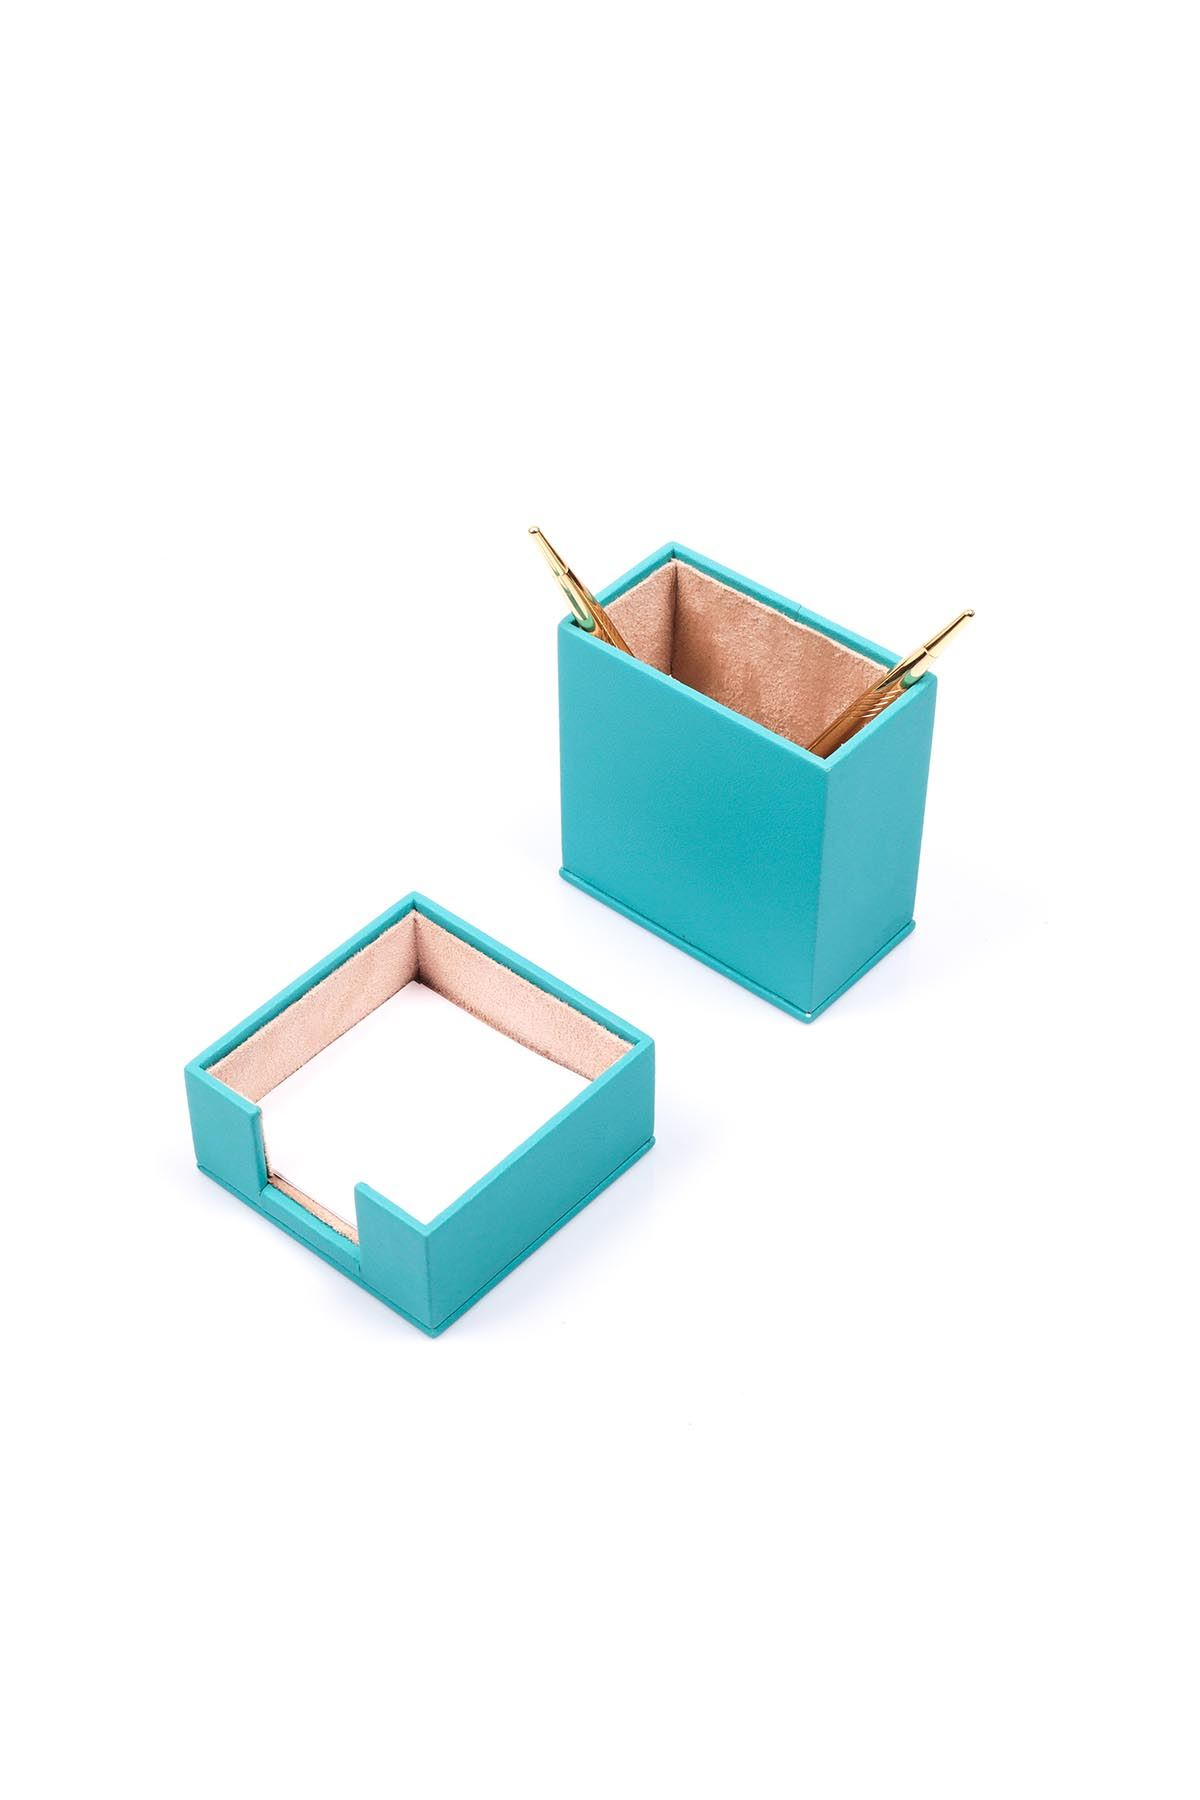 Leather Desk Accessories set of 2 Turquise| Desk Set Accessories | Desktop Accessories | Desk Accessories | Desk Organizers | Pencil Holder | Note Paper Holder